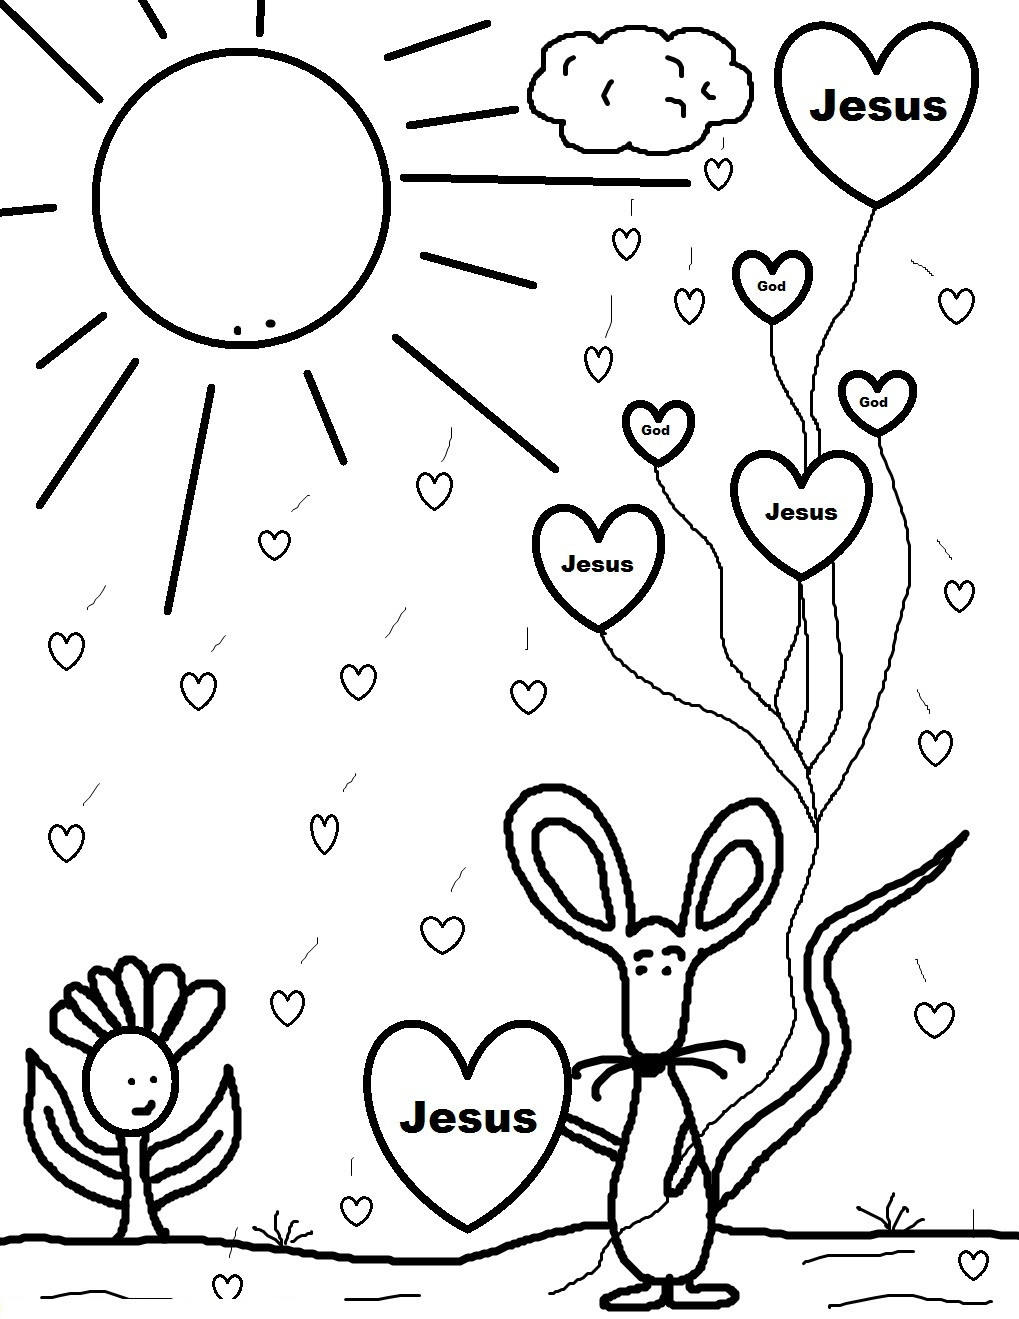 Valentine'S Day Coloring Pages For Kids  Free Printable Valentine Coloring Pages For Kids